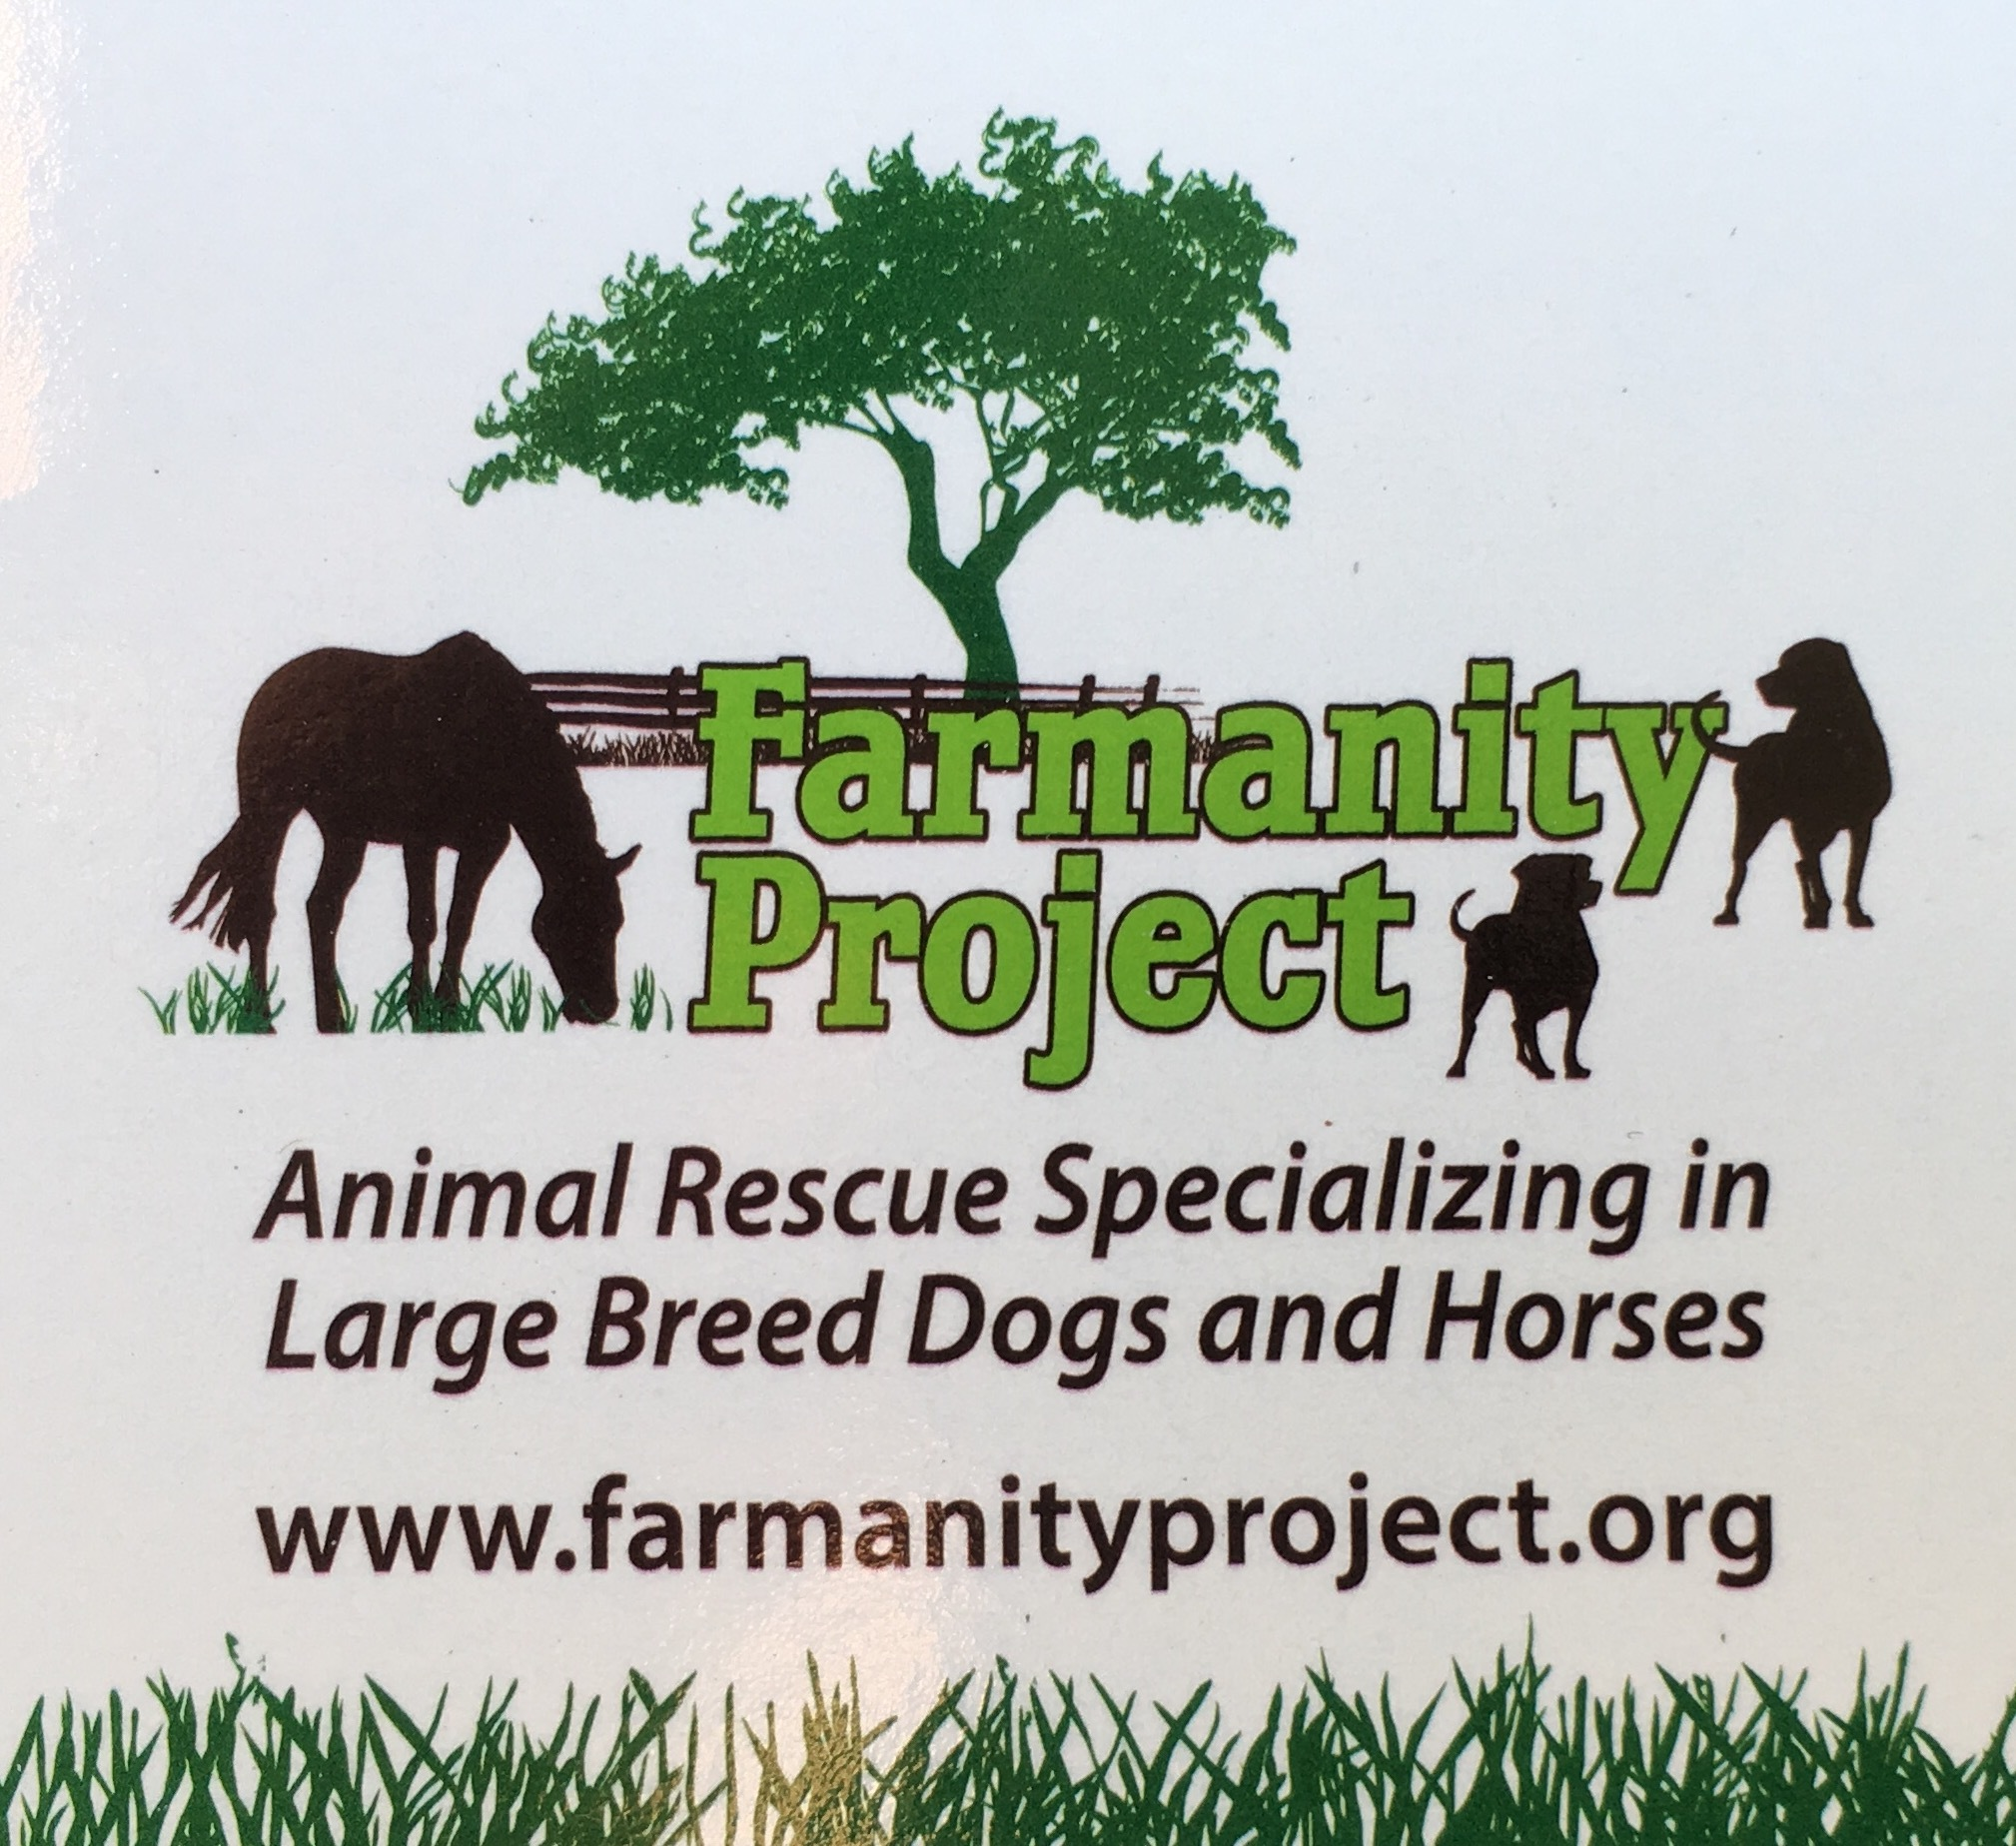 Farmanity Project